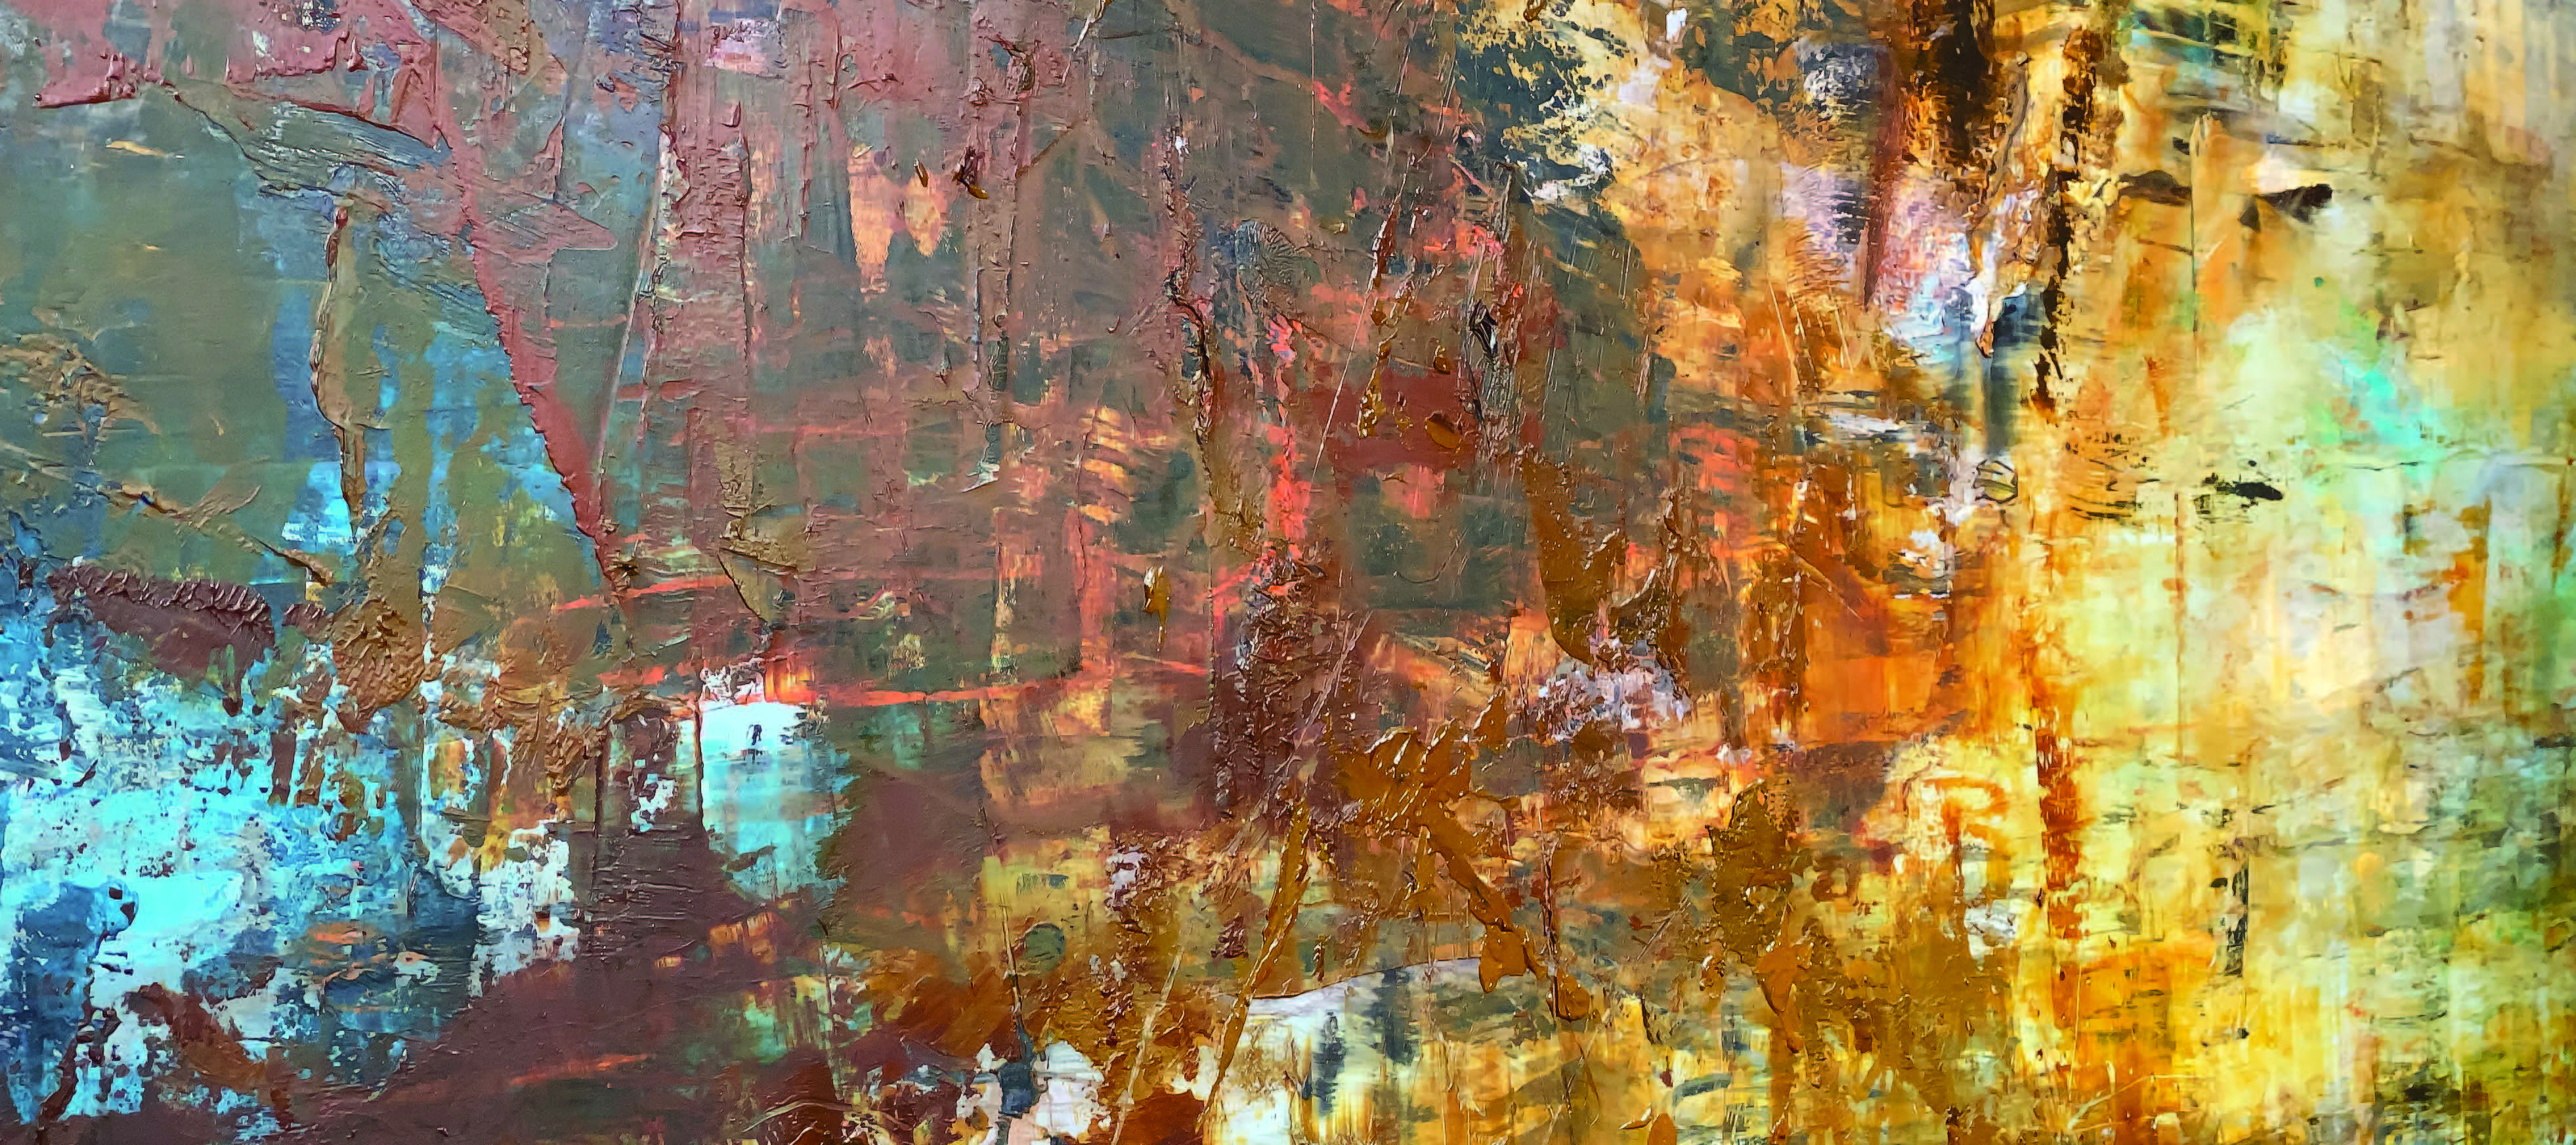 Colorful textured abstract painting